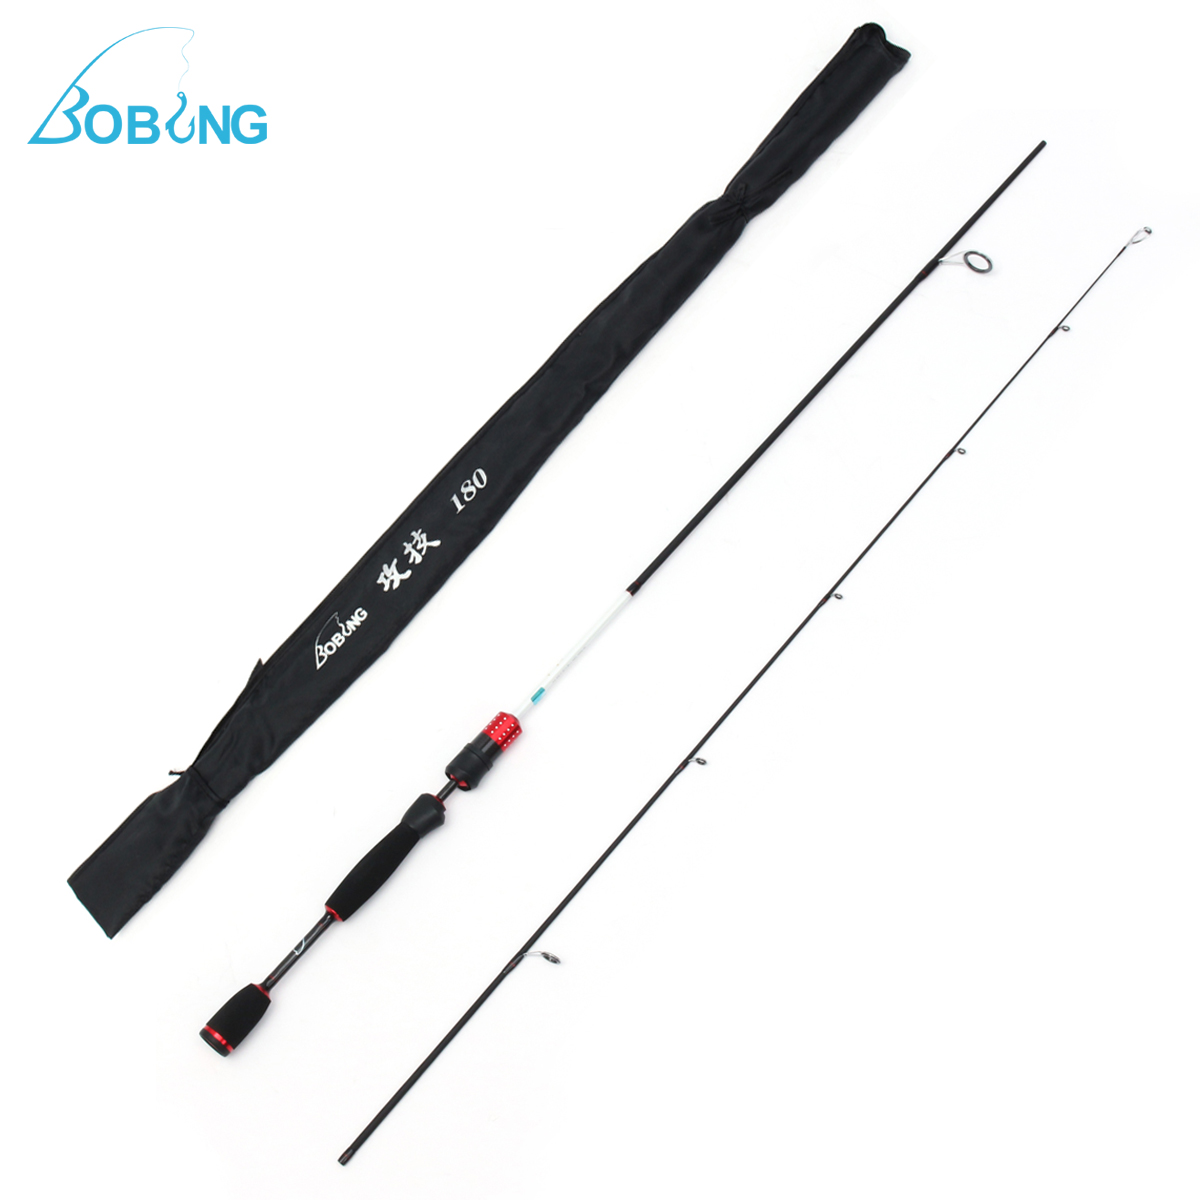 Bobing 1.8m Carbon Fiber Spinning Fishing Rod 3KG Load